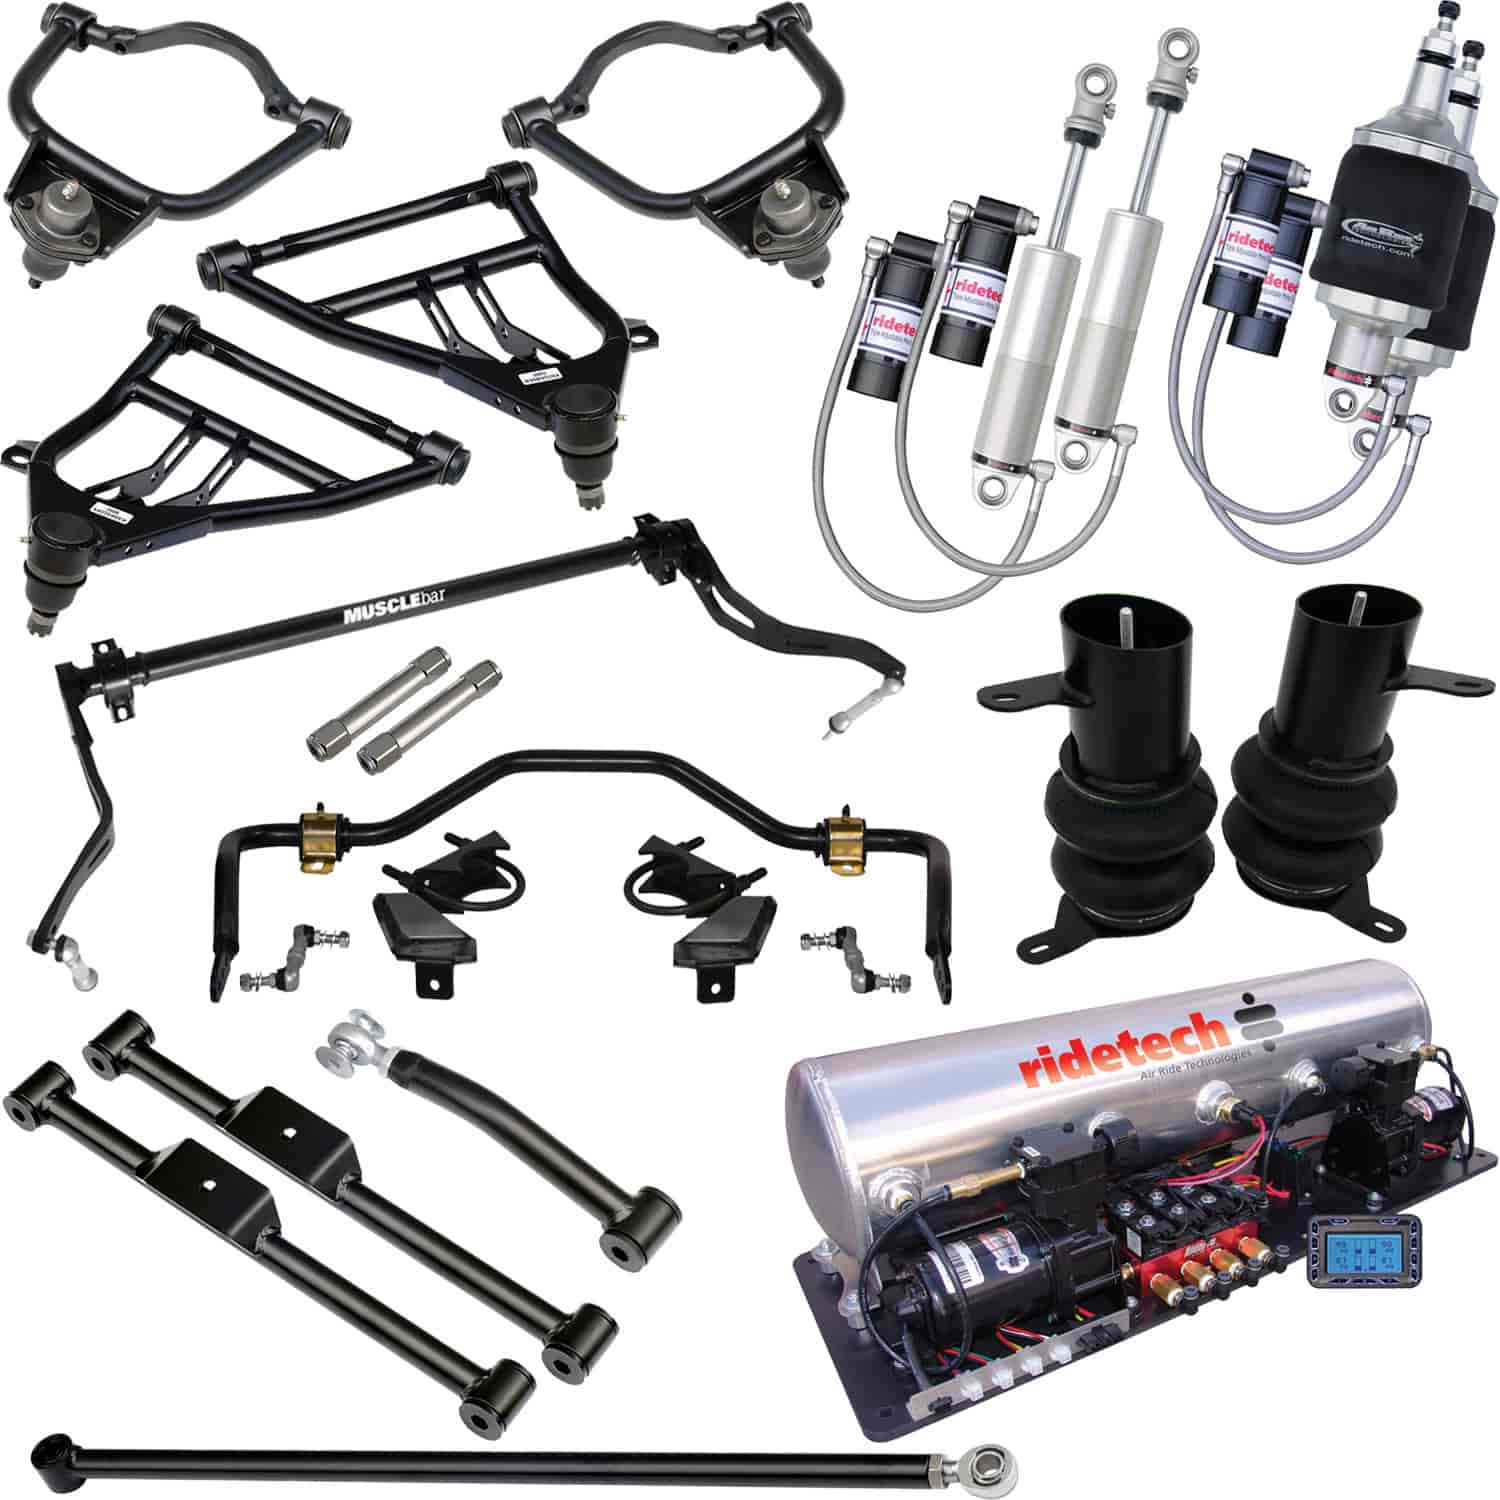 Ridetech 11060399 - Ridetech 1958-64 Chevy Impala Air Suspension System